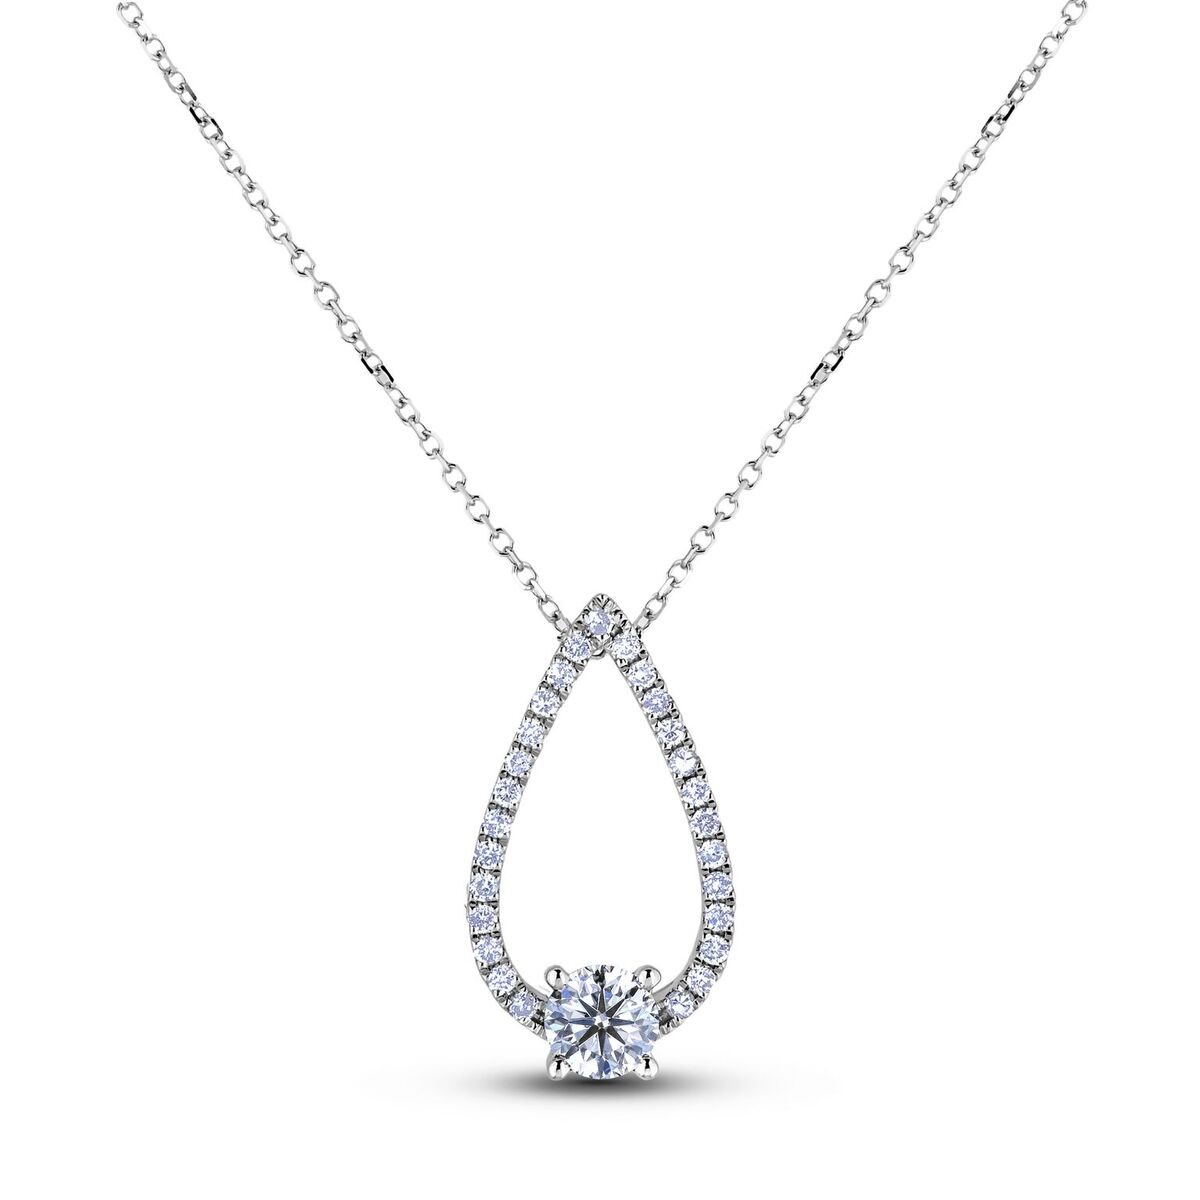 Diamond Pendants AFCP1339010 (Pendants)